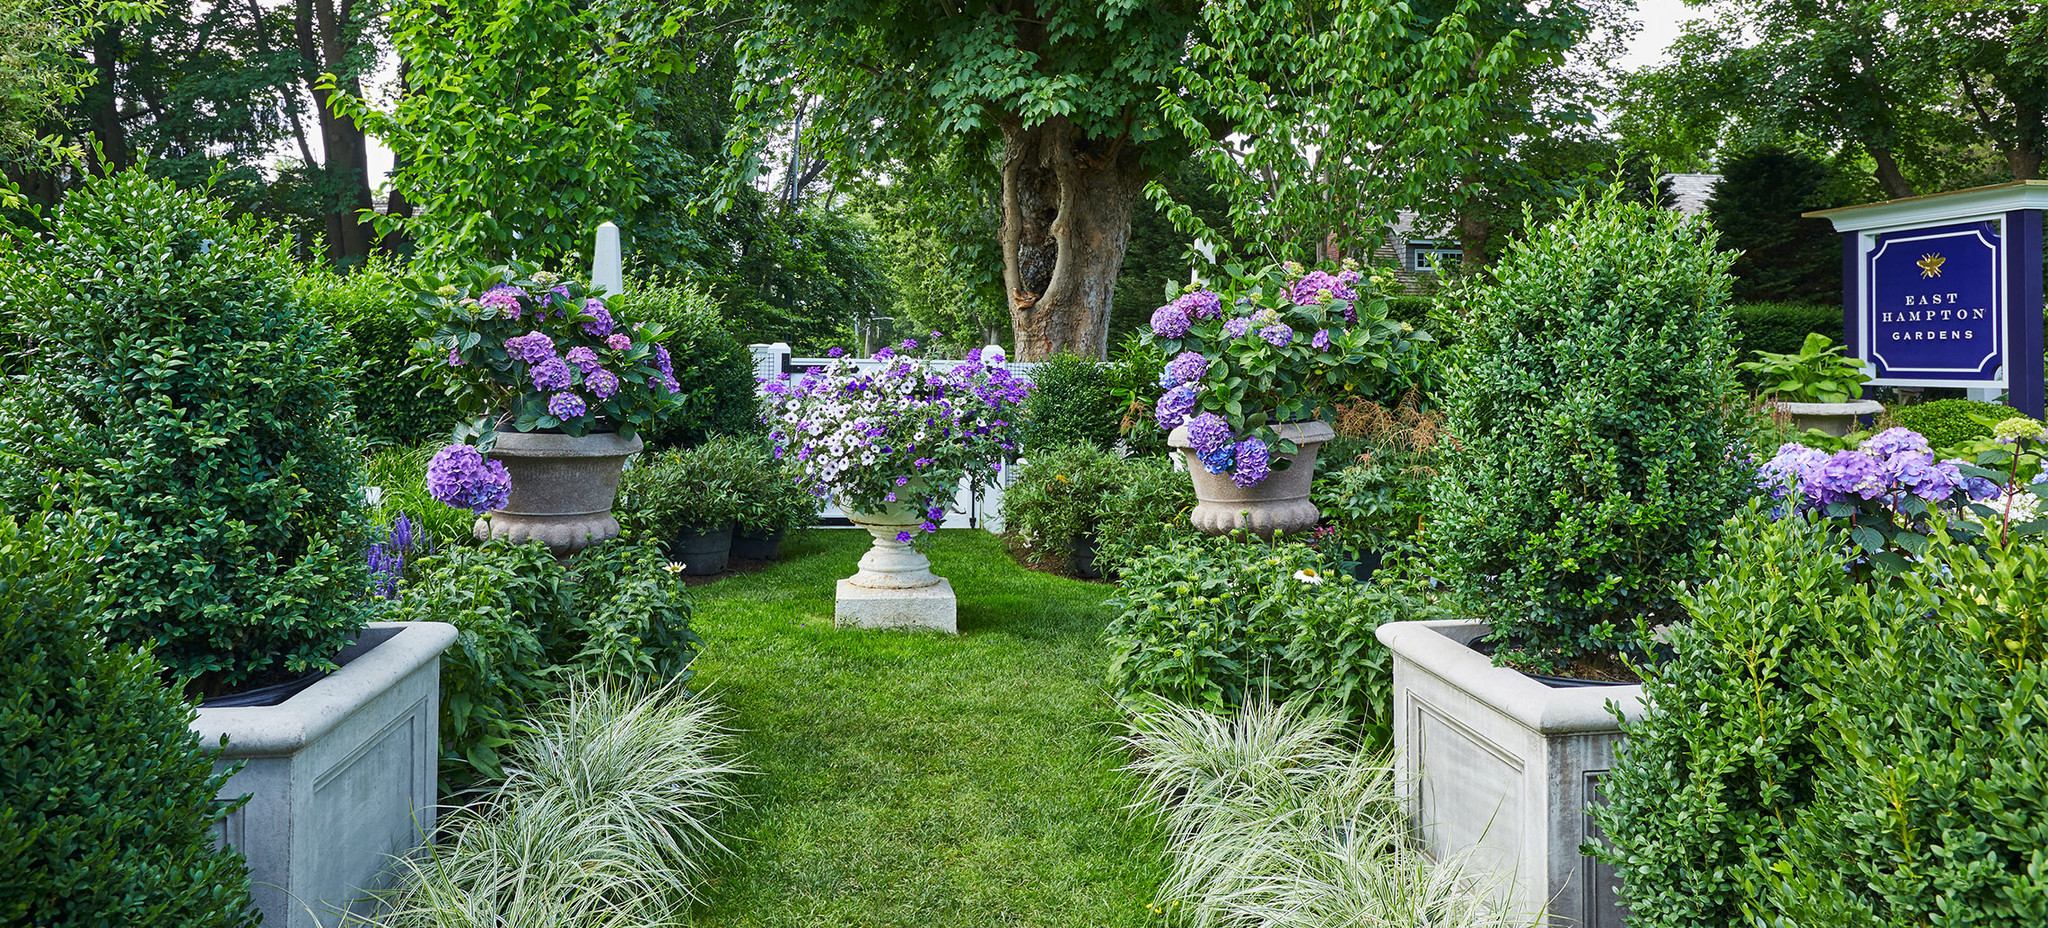 About East Hampton Gardens